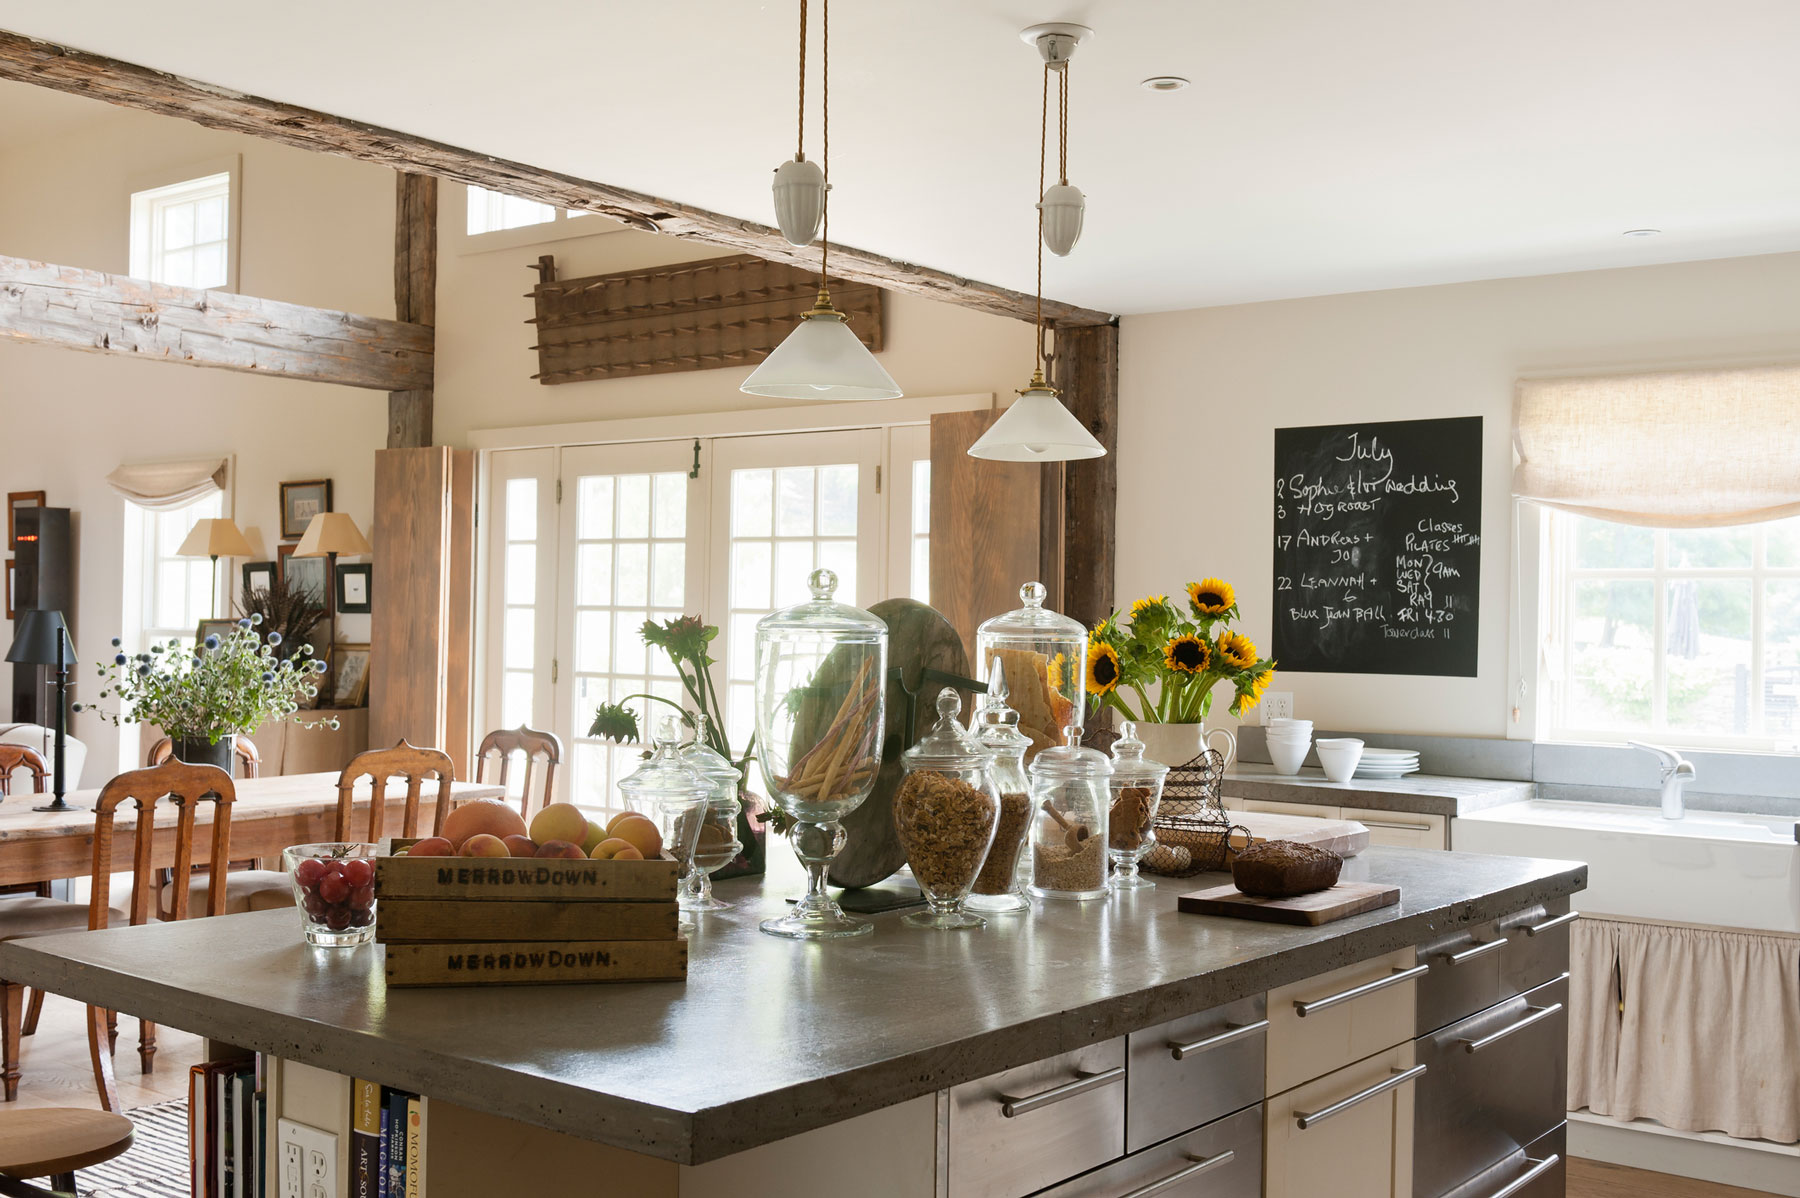 Farmhouse kitchen decor ideas - modern farmhouse kitchen